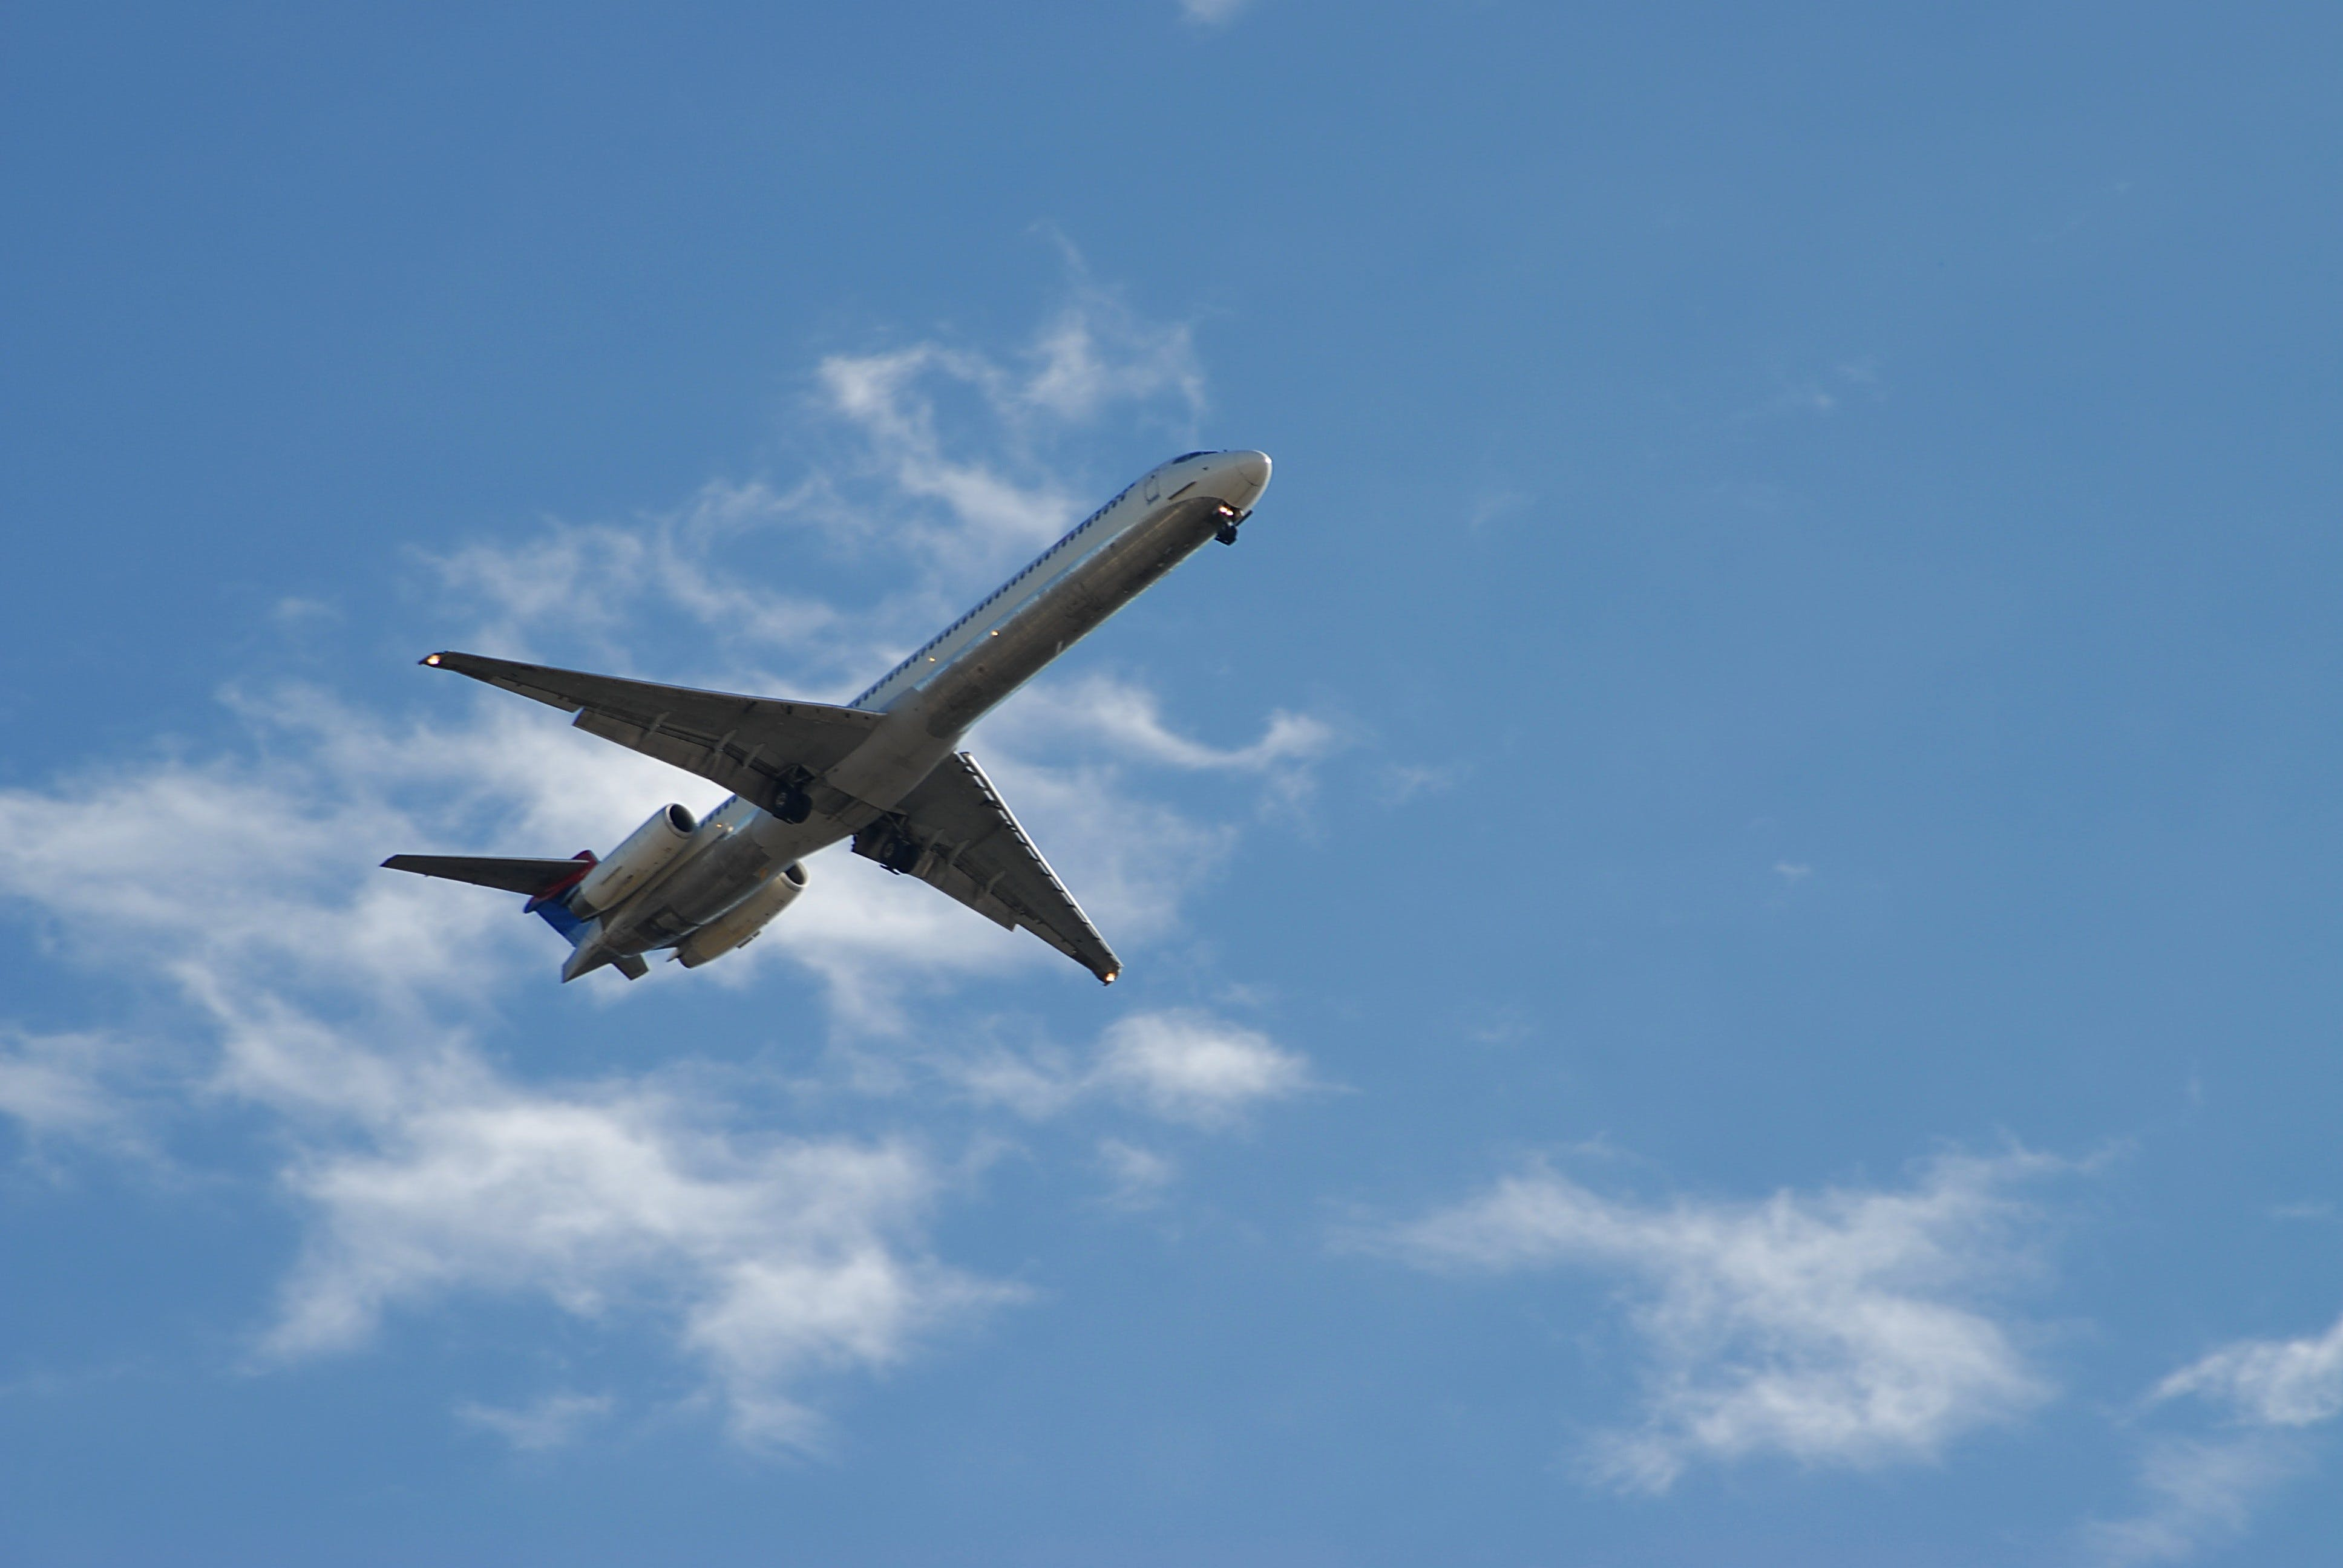 White and Blue Airplane Under White and Blue Sky during Daytime